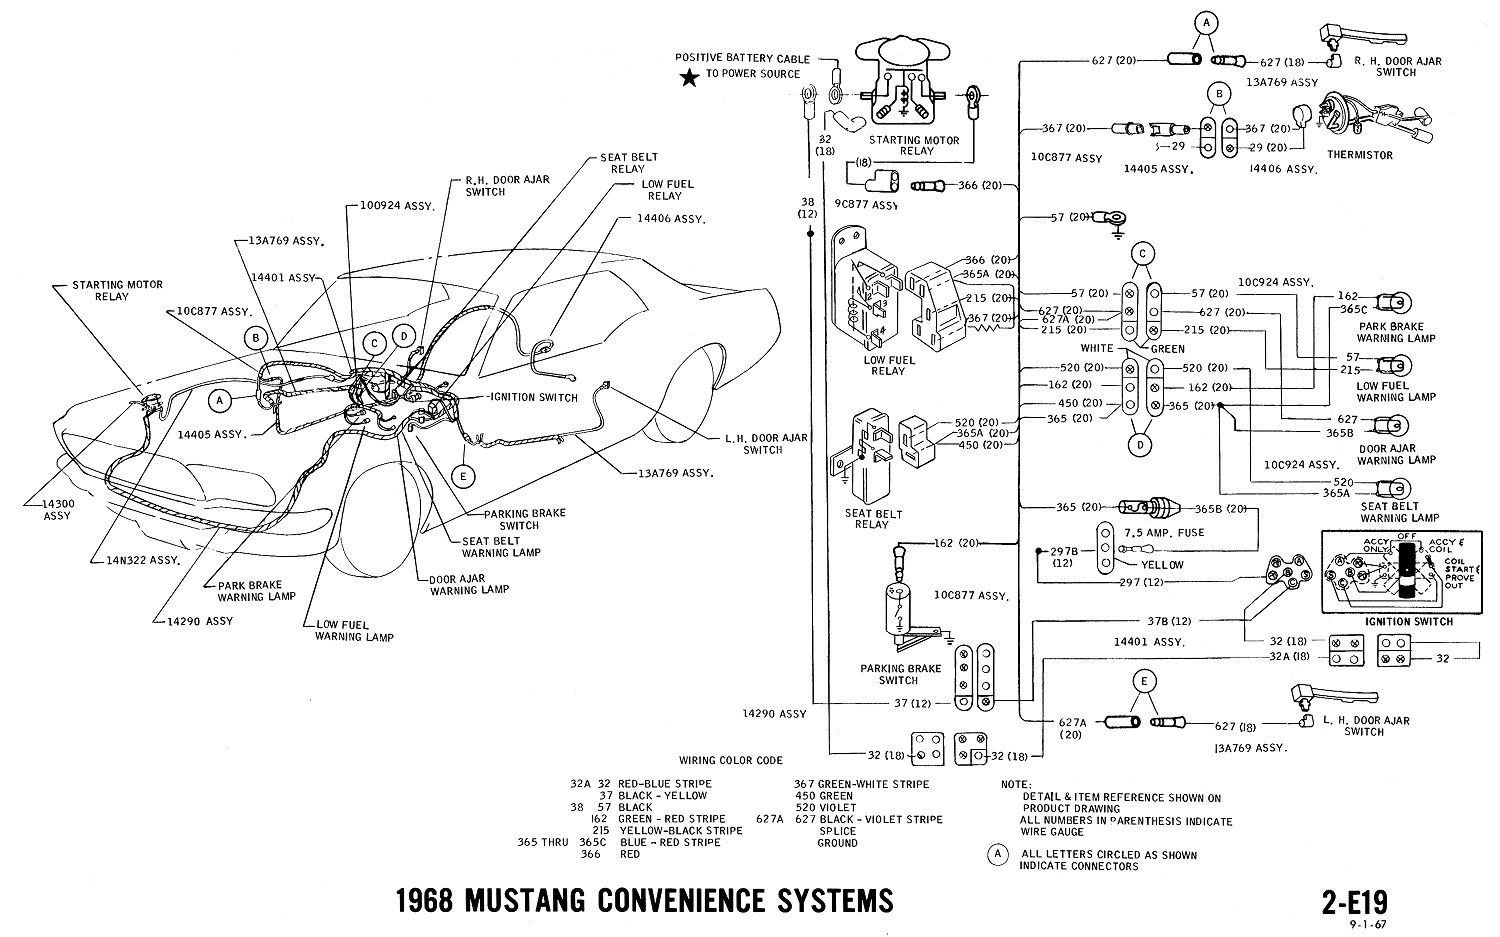 1968 mustang wiring harness diagram 1968 ford mustang instrument 1968 mustang wiring diagrams and vacuum schematics average joe 1968 mustang wiring harness schematic 1968 mustang asfbconference2016 Image collections